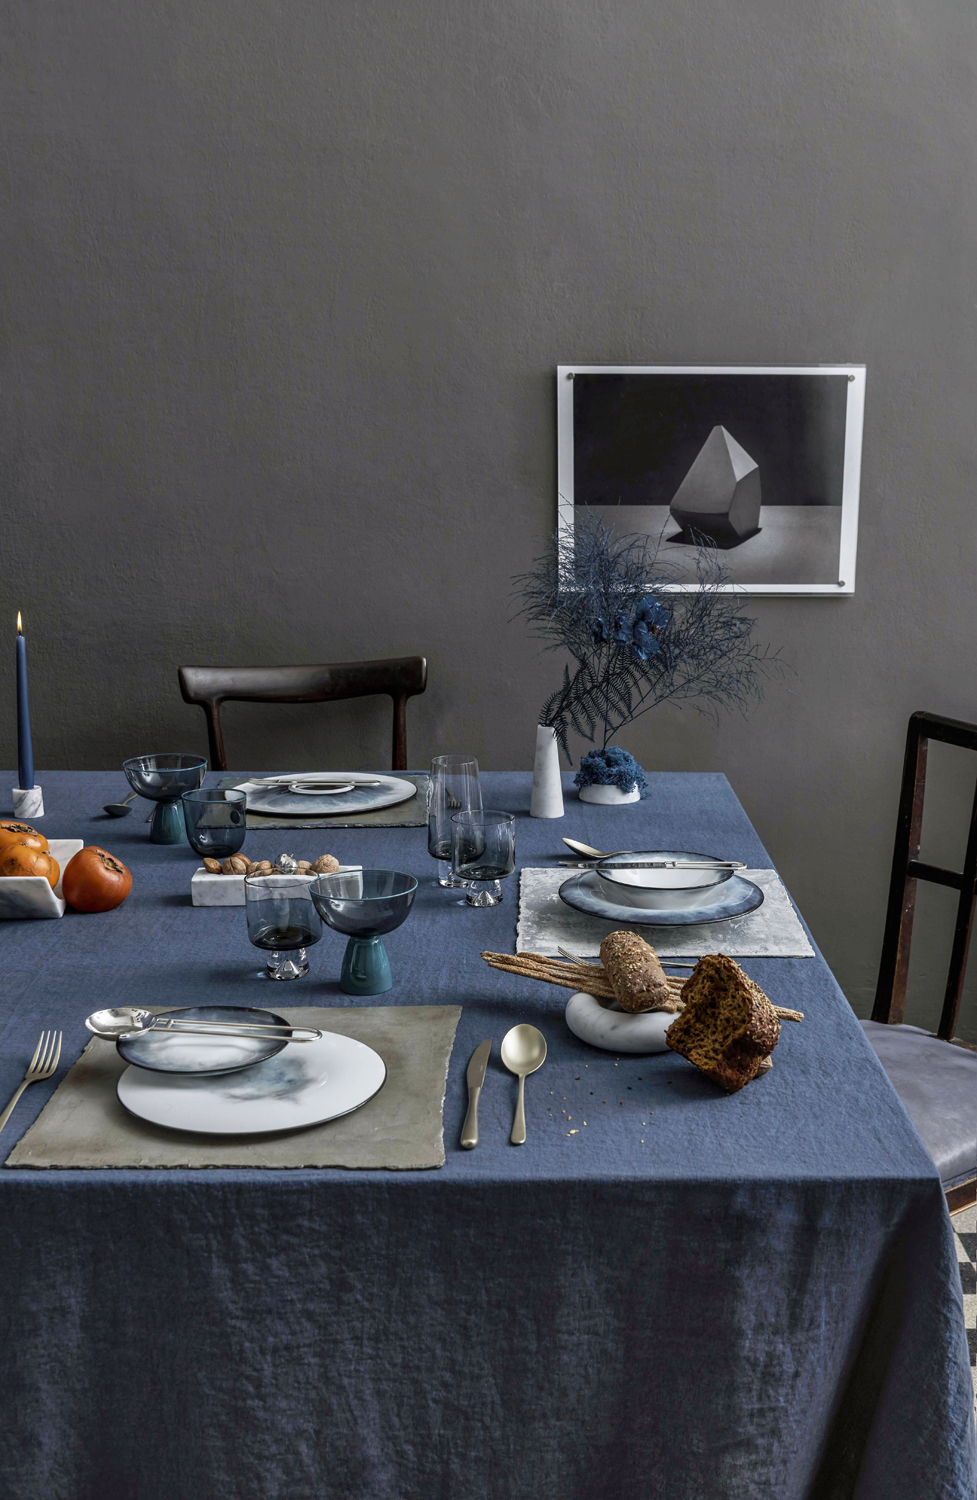 LIVING_TABLE_NORDICA_392